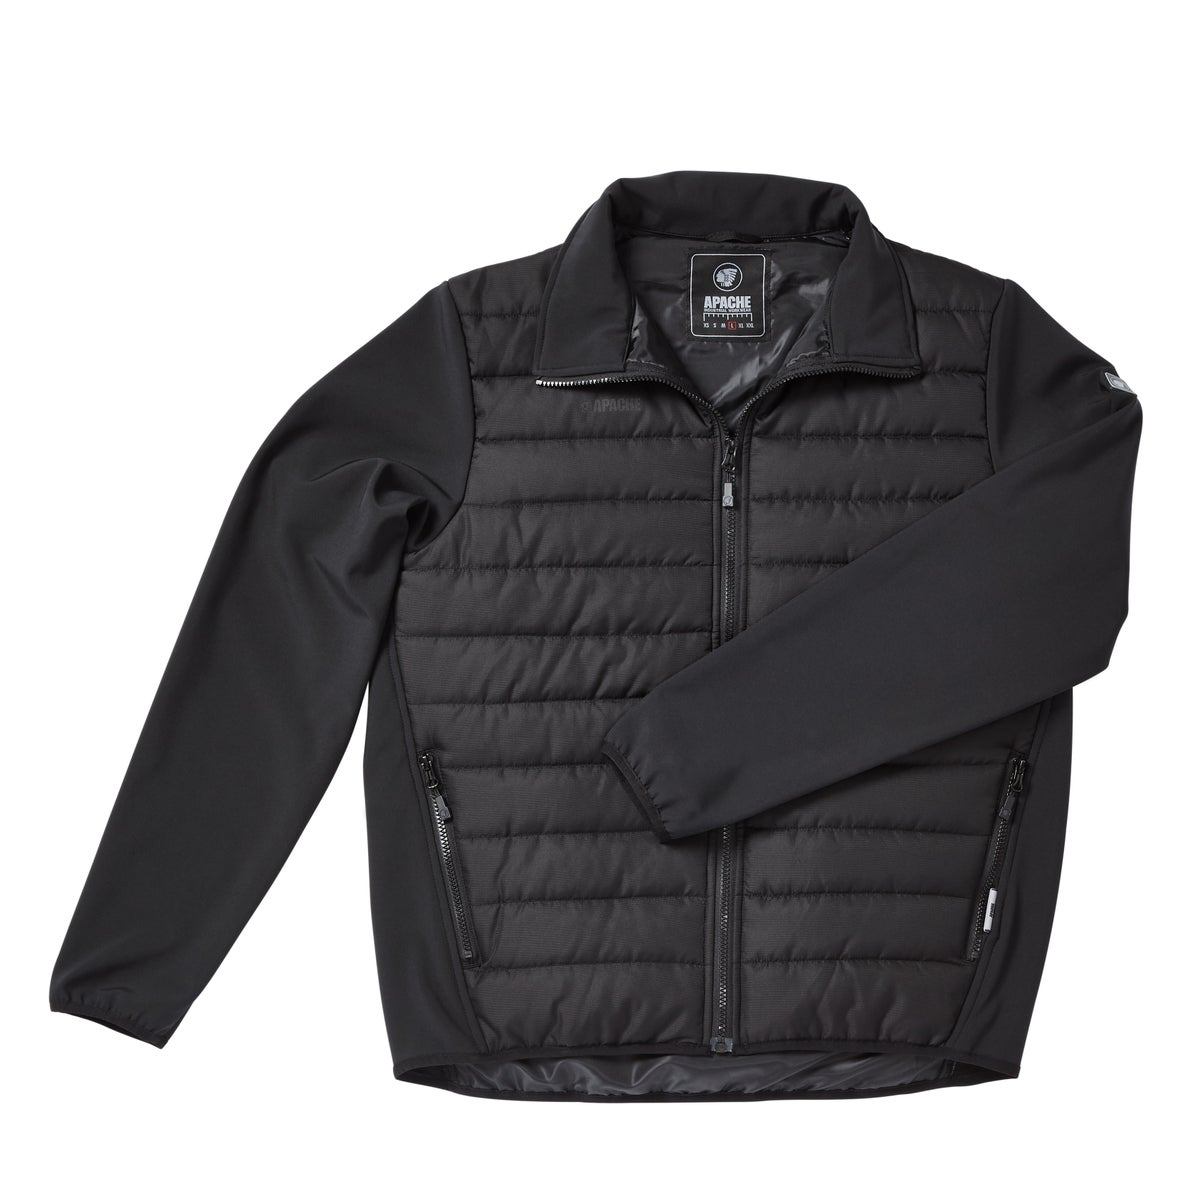 Image of ATS Hybrid Jacket